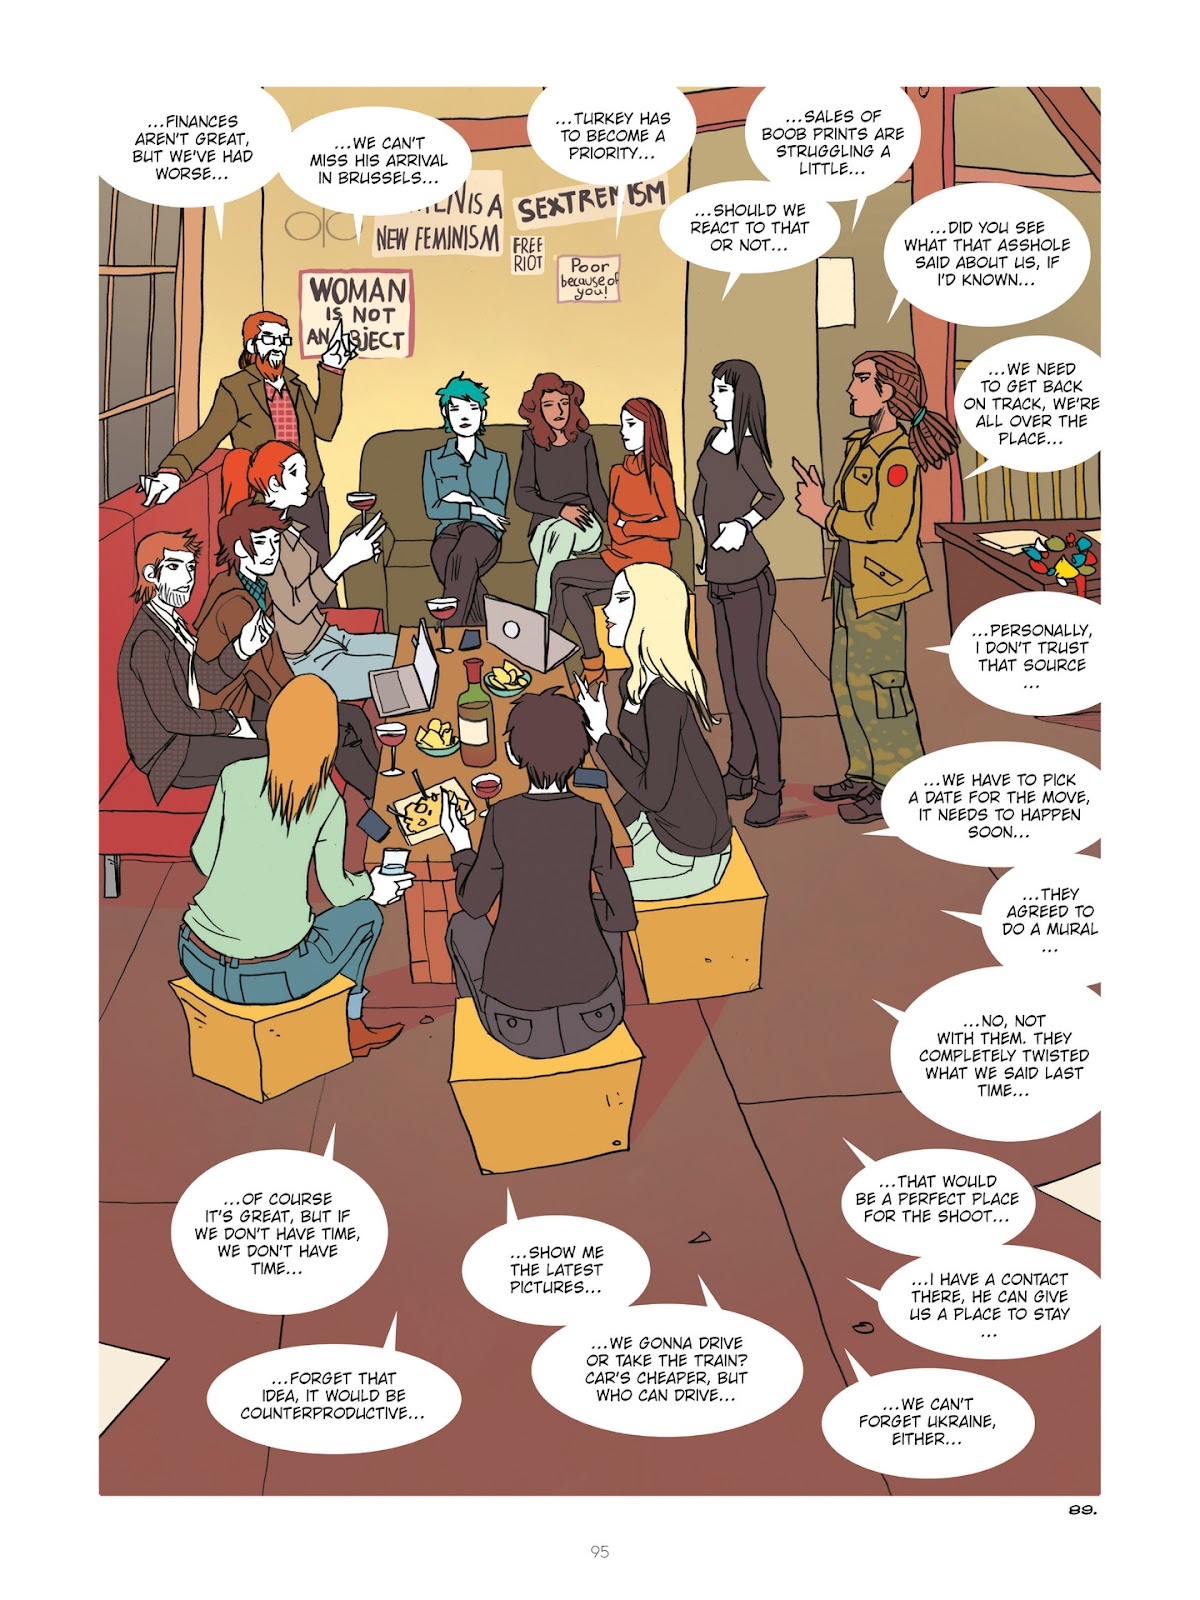 Read online Diary of A Femen comic -  Issue # TPB - 97